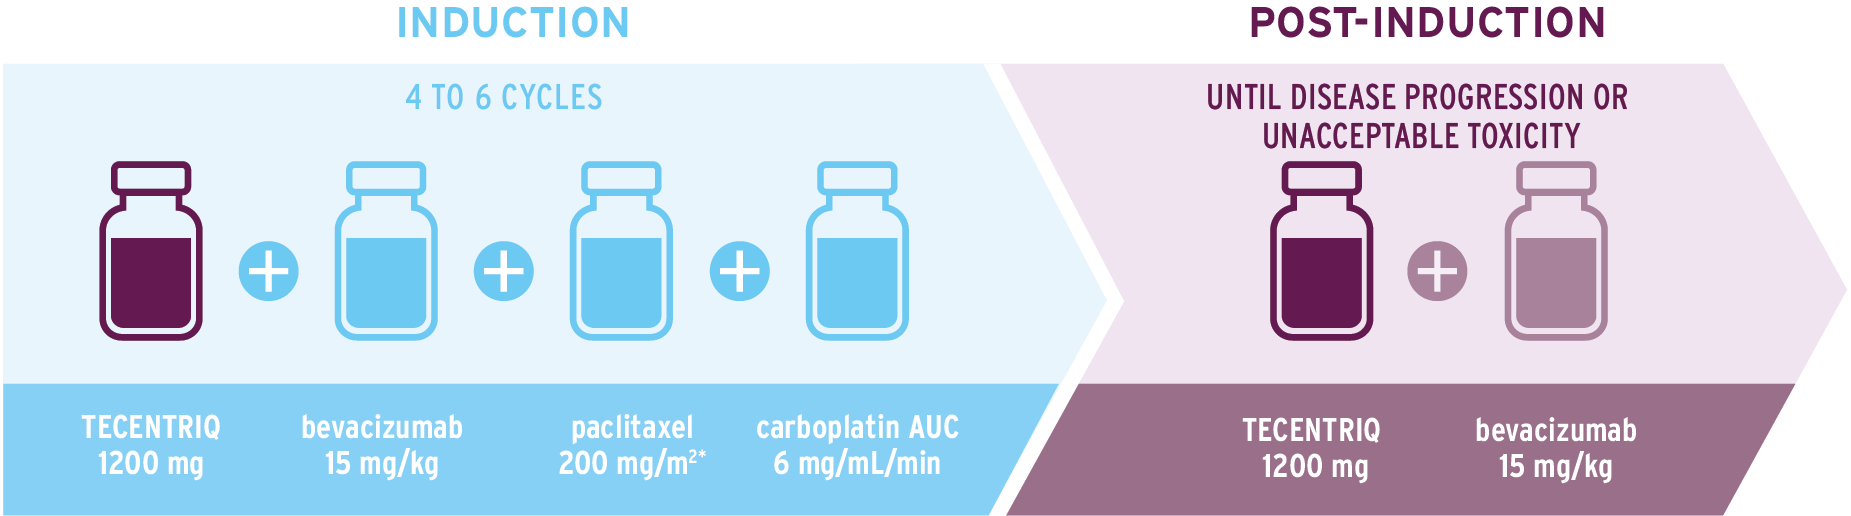 Infographic to illustrate how to administer TECENTRIQ in combination with bevacizumab, paclitaxel and carboplatin.